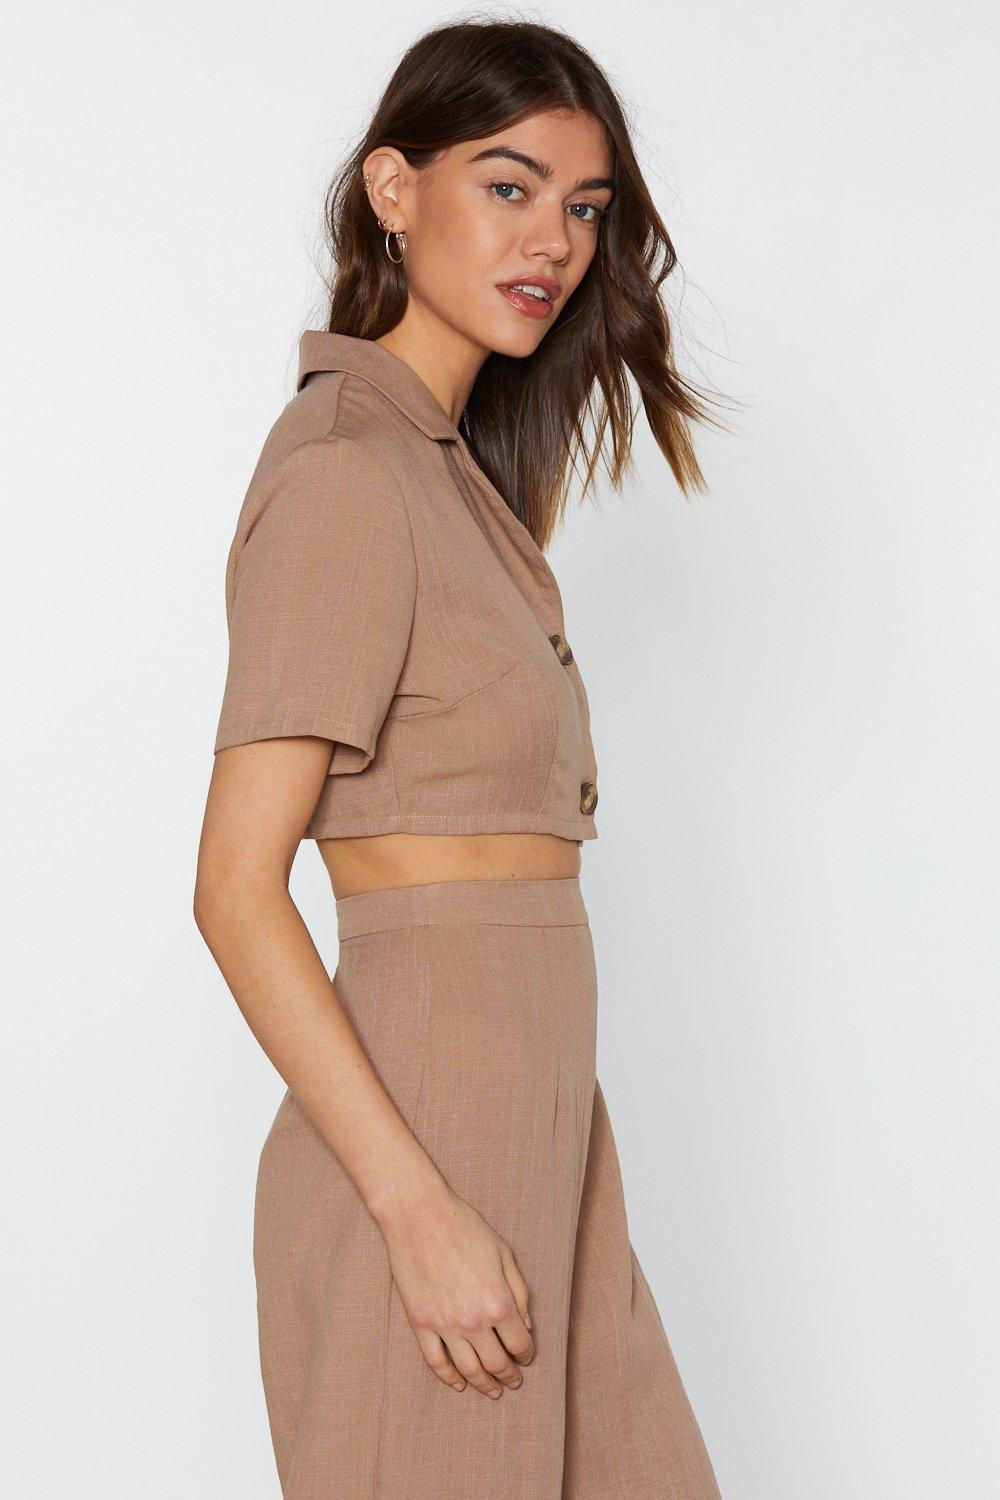 ff46dfc288 In It to Linen It Cropped Shirt | Shop Clothes at Nasty Gal!